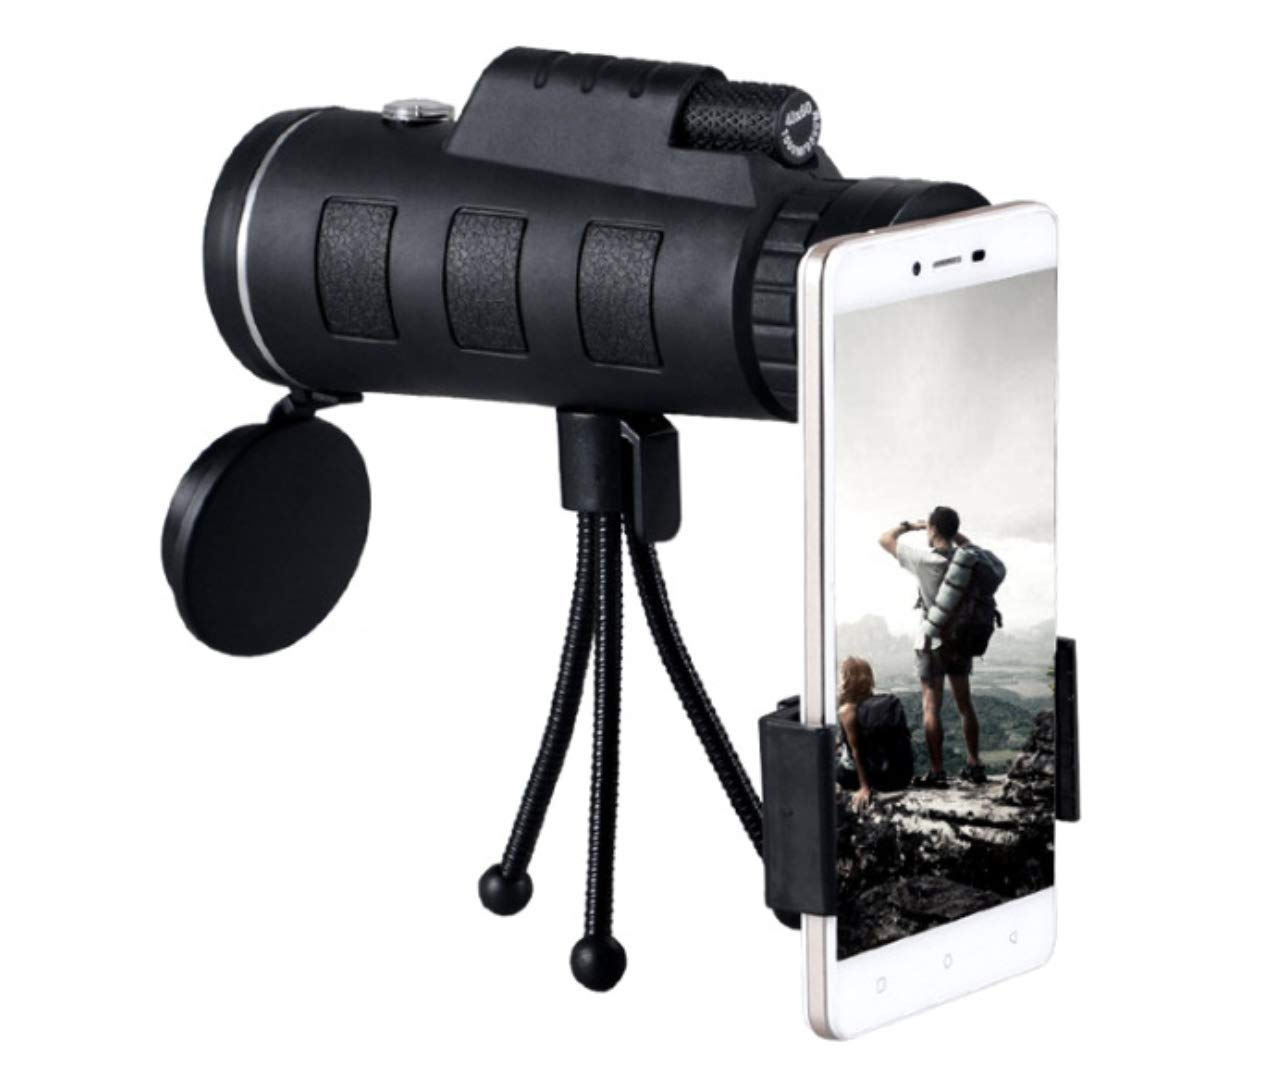 Monocular Telescope by DANMO  40x60 High Power Monocular with Smartphone Holder and Tripod Single Hand Focus for Outdoor  Bird Watching Camping Hunting Travel